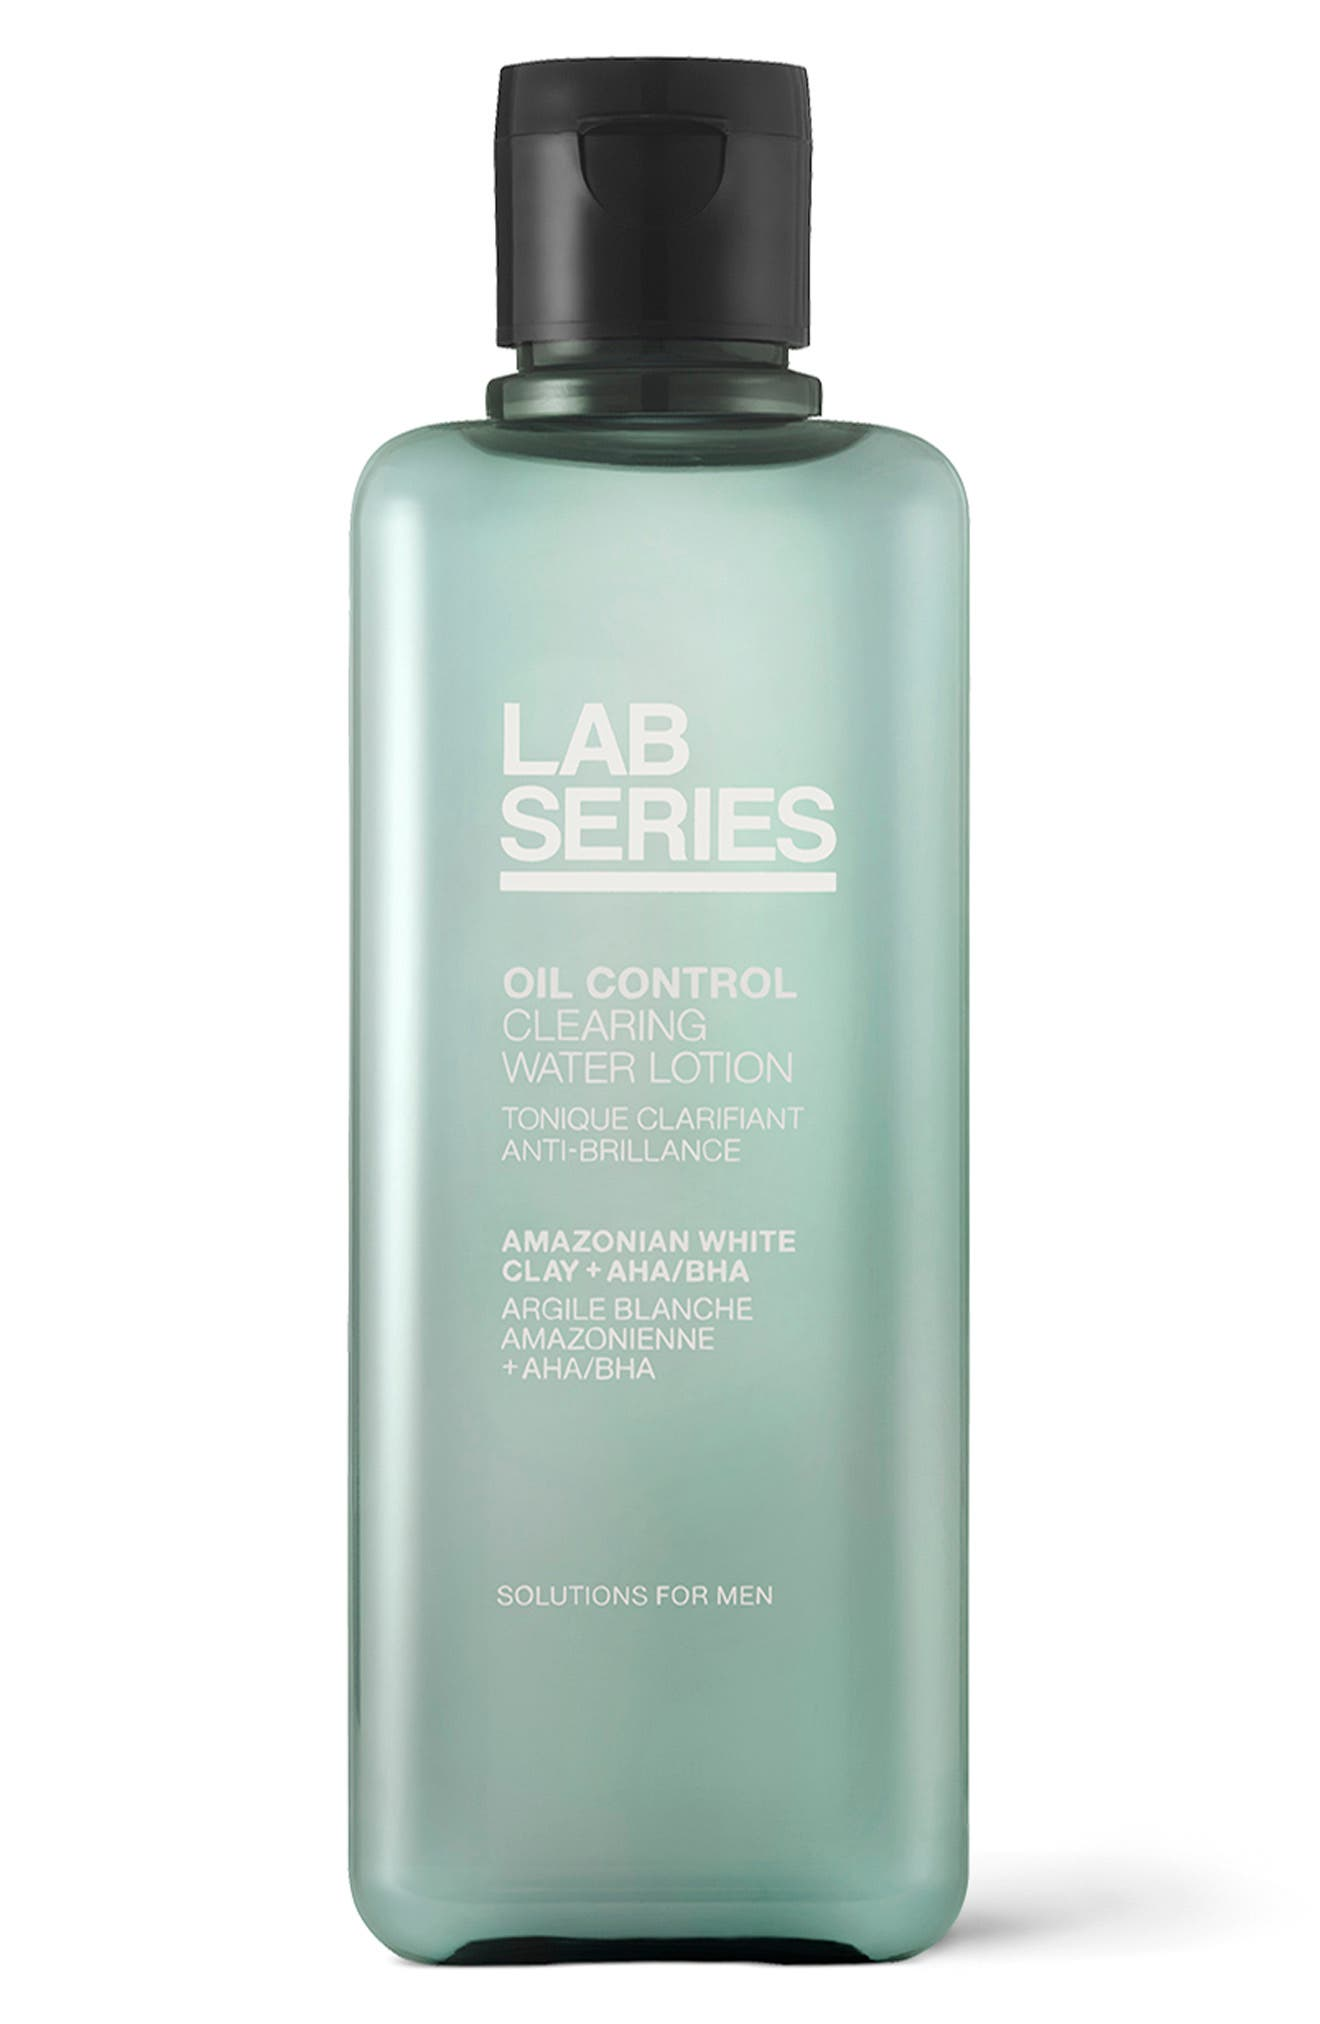 Oil Control Clearing Water Lotion